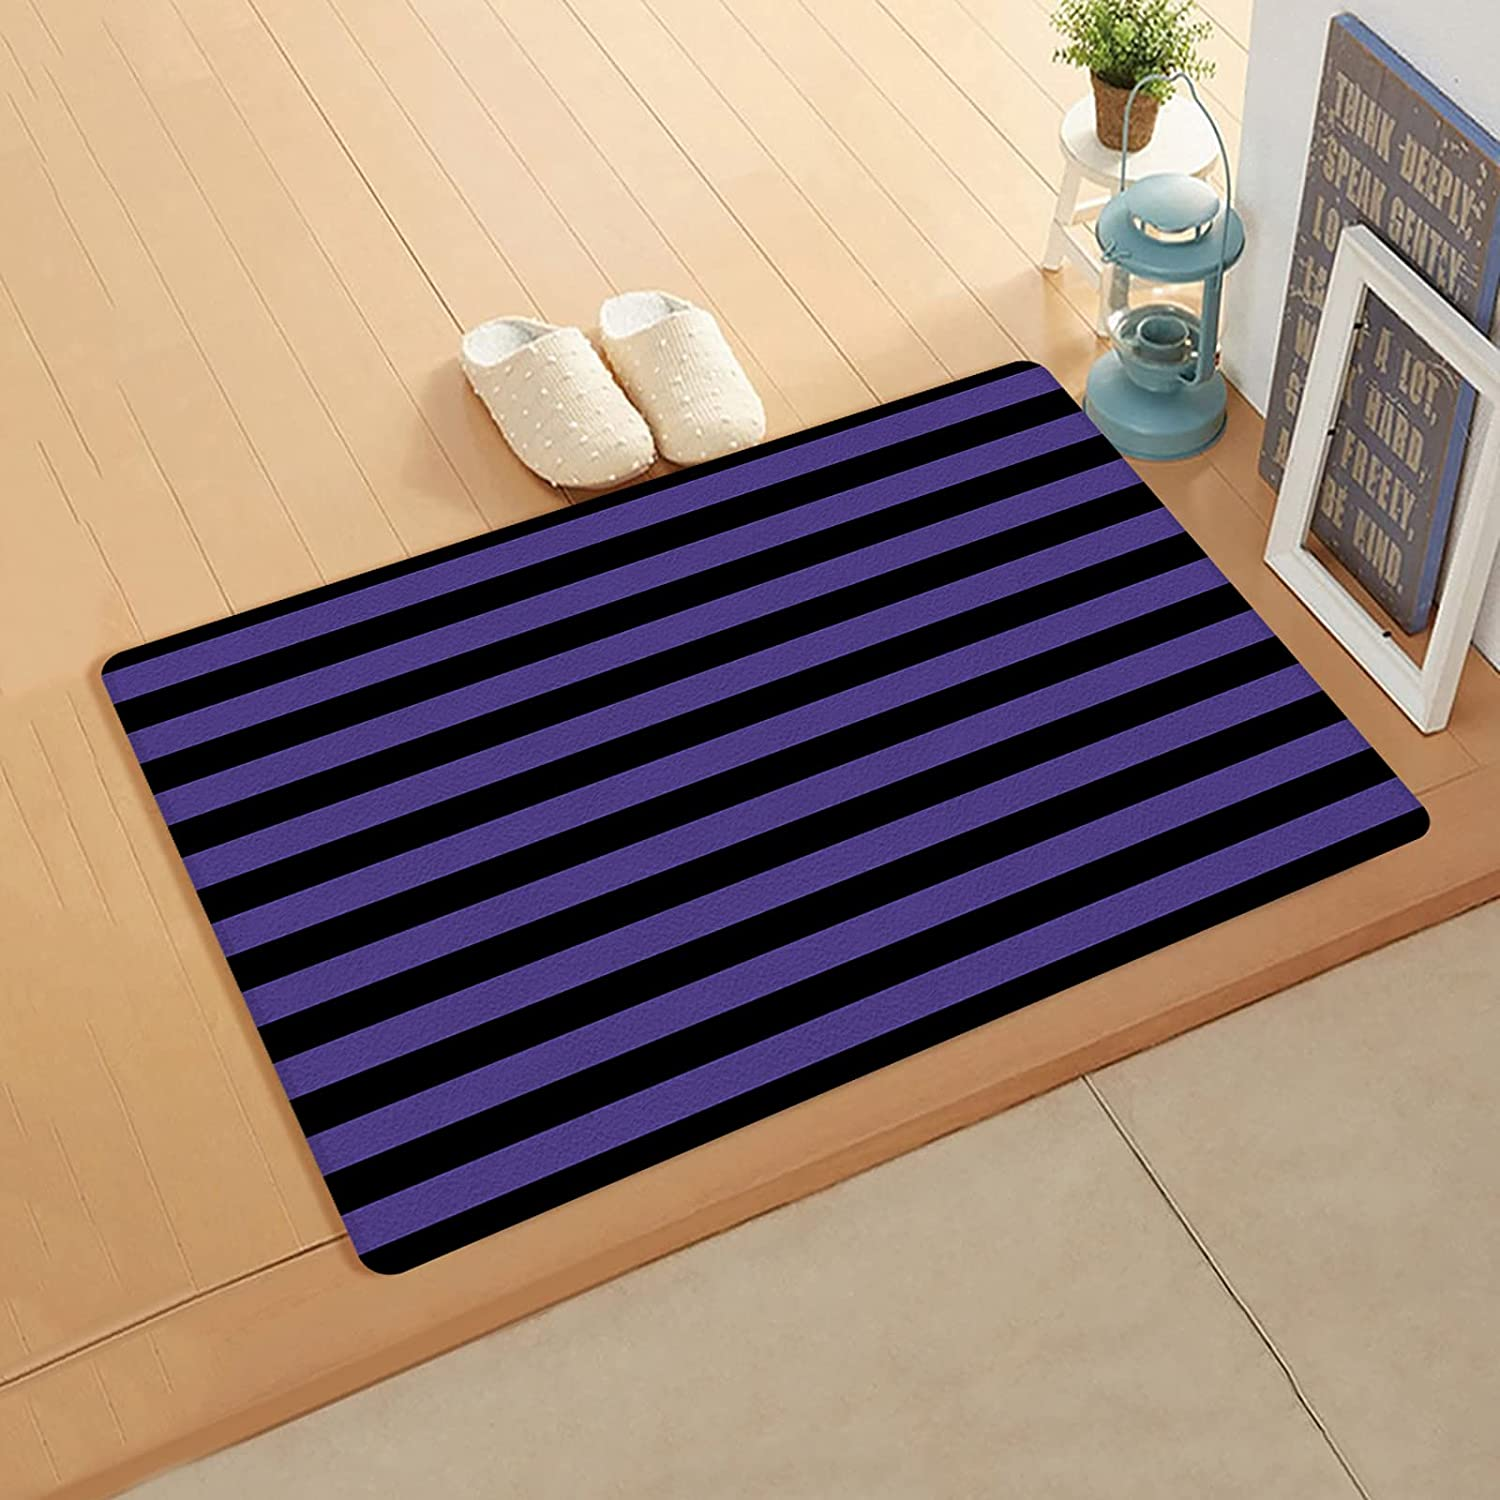 CyCoShower Doormats Super Soft Leather Bla Max 73% OFF Free Shipping Cheap Bargain Gift Rugs Halloween Purple